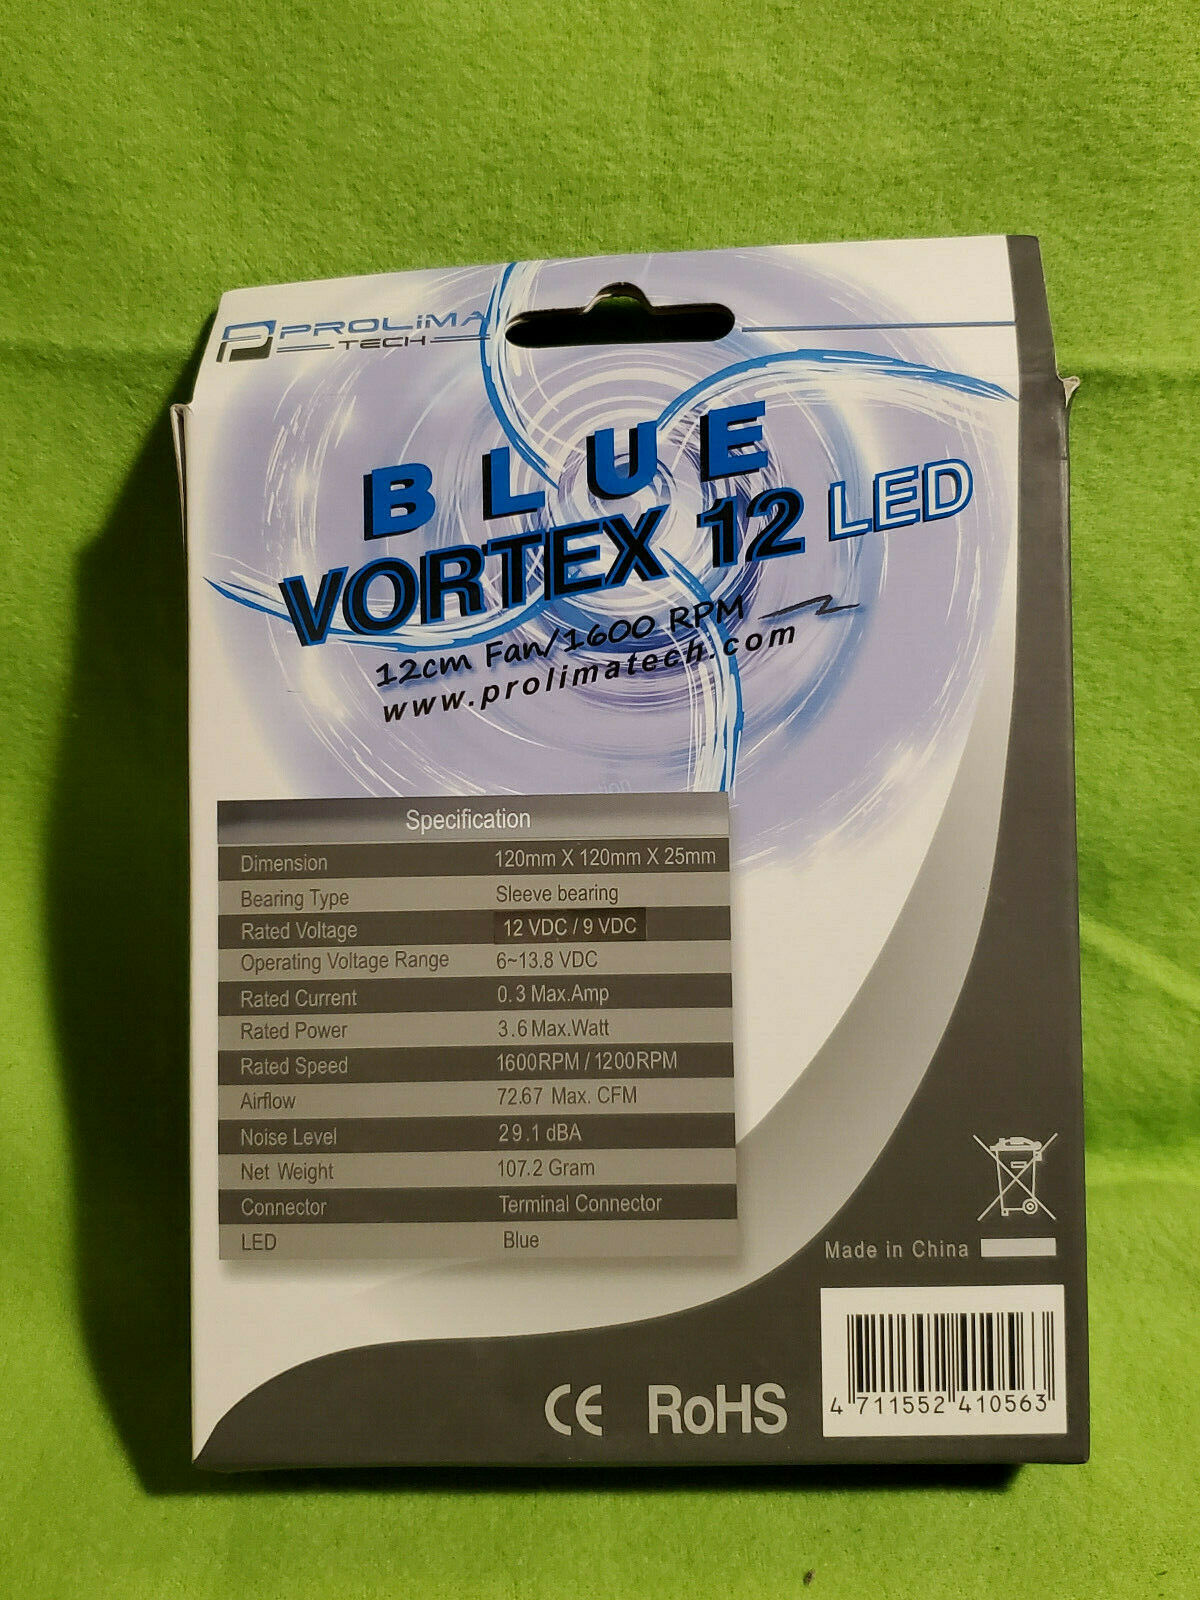 Prolimatech Blue Vortex 12 LED High Static Pressure and Airflow Fan 120mm